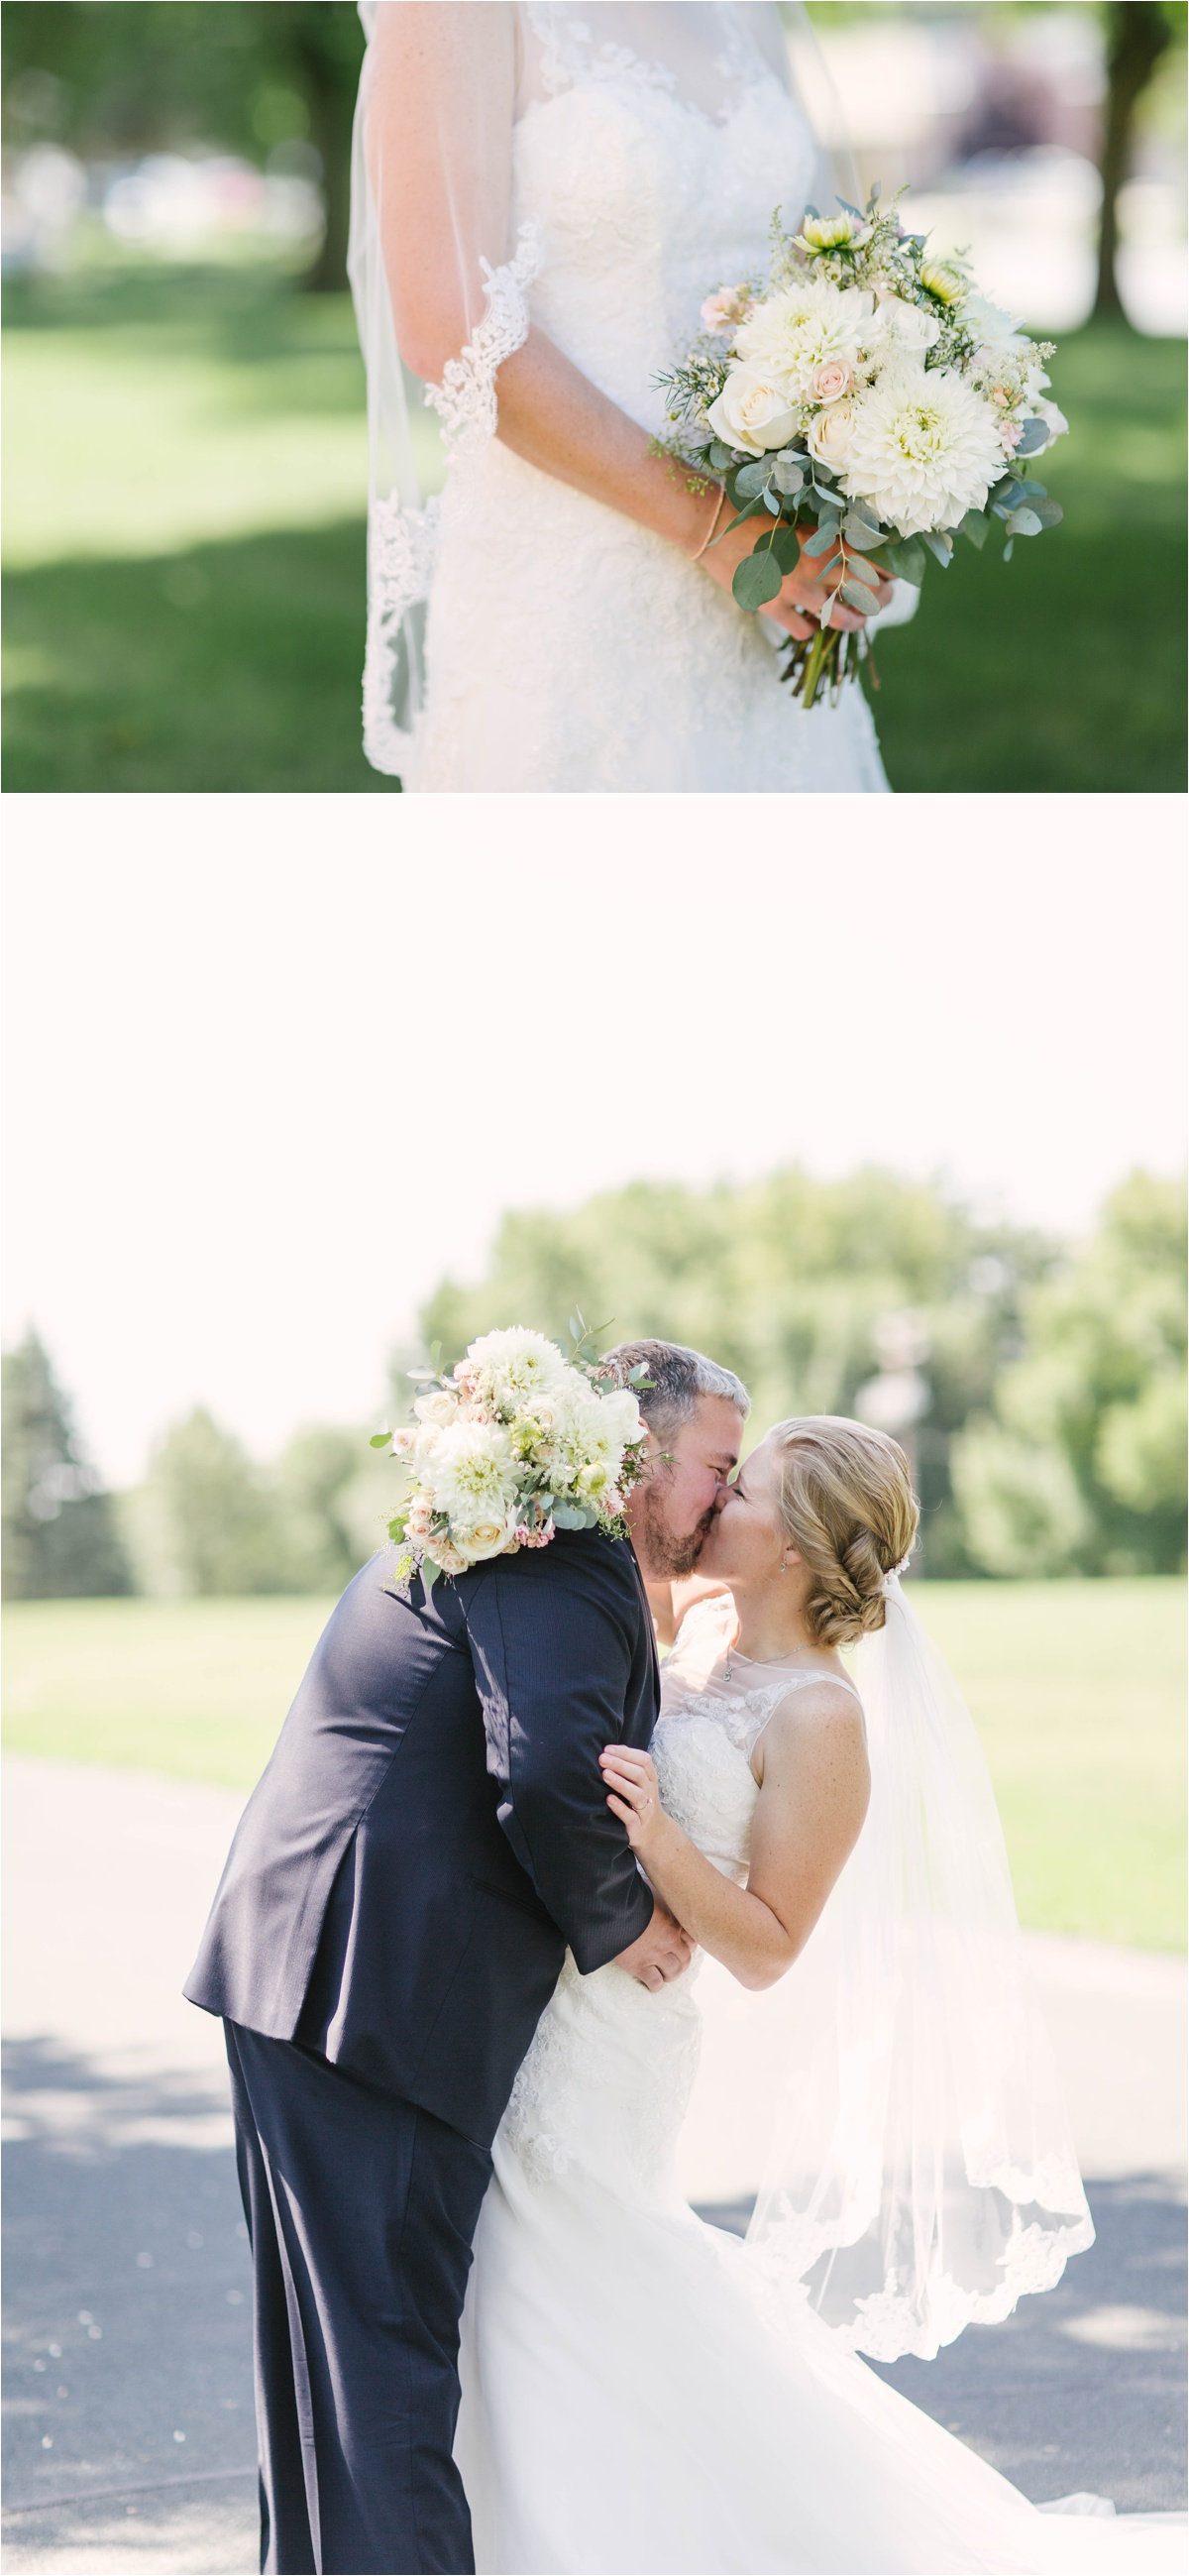 Stephanie Lynn Photography- Johnson Wedding, Oak View Events, Owatonna, MN_0016.jpg